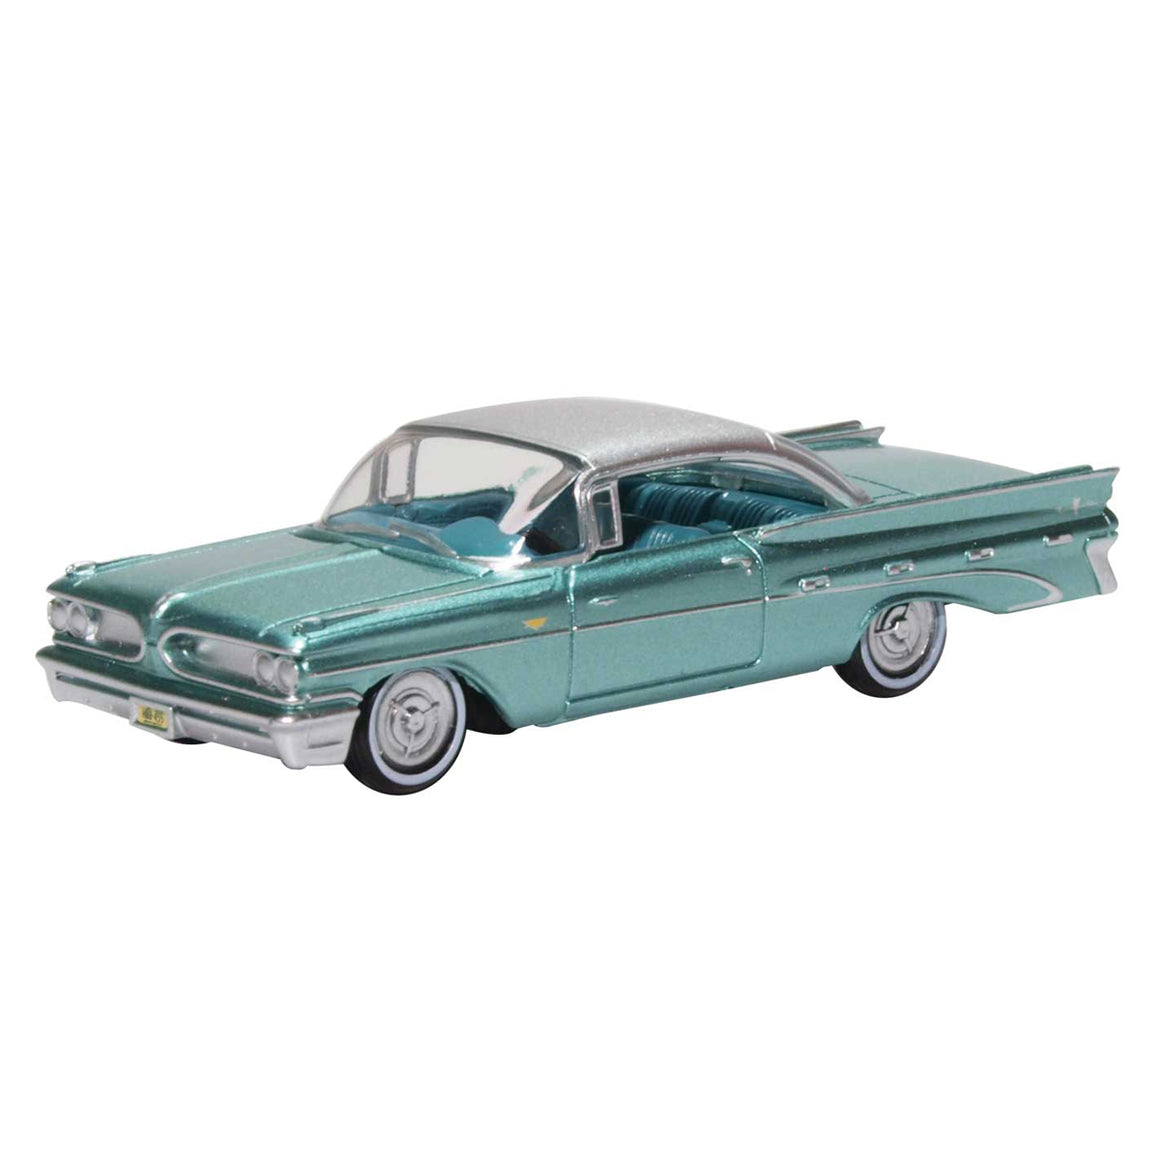 HO Scale: 1959 Pontiac Bonneville - Seaspray Green